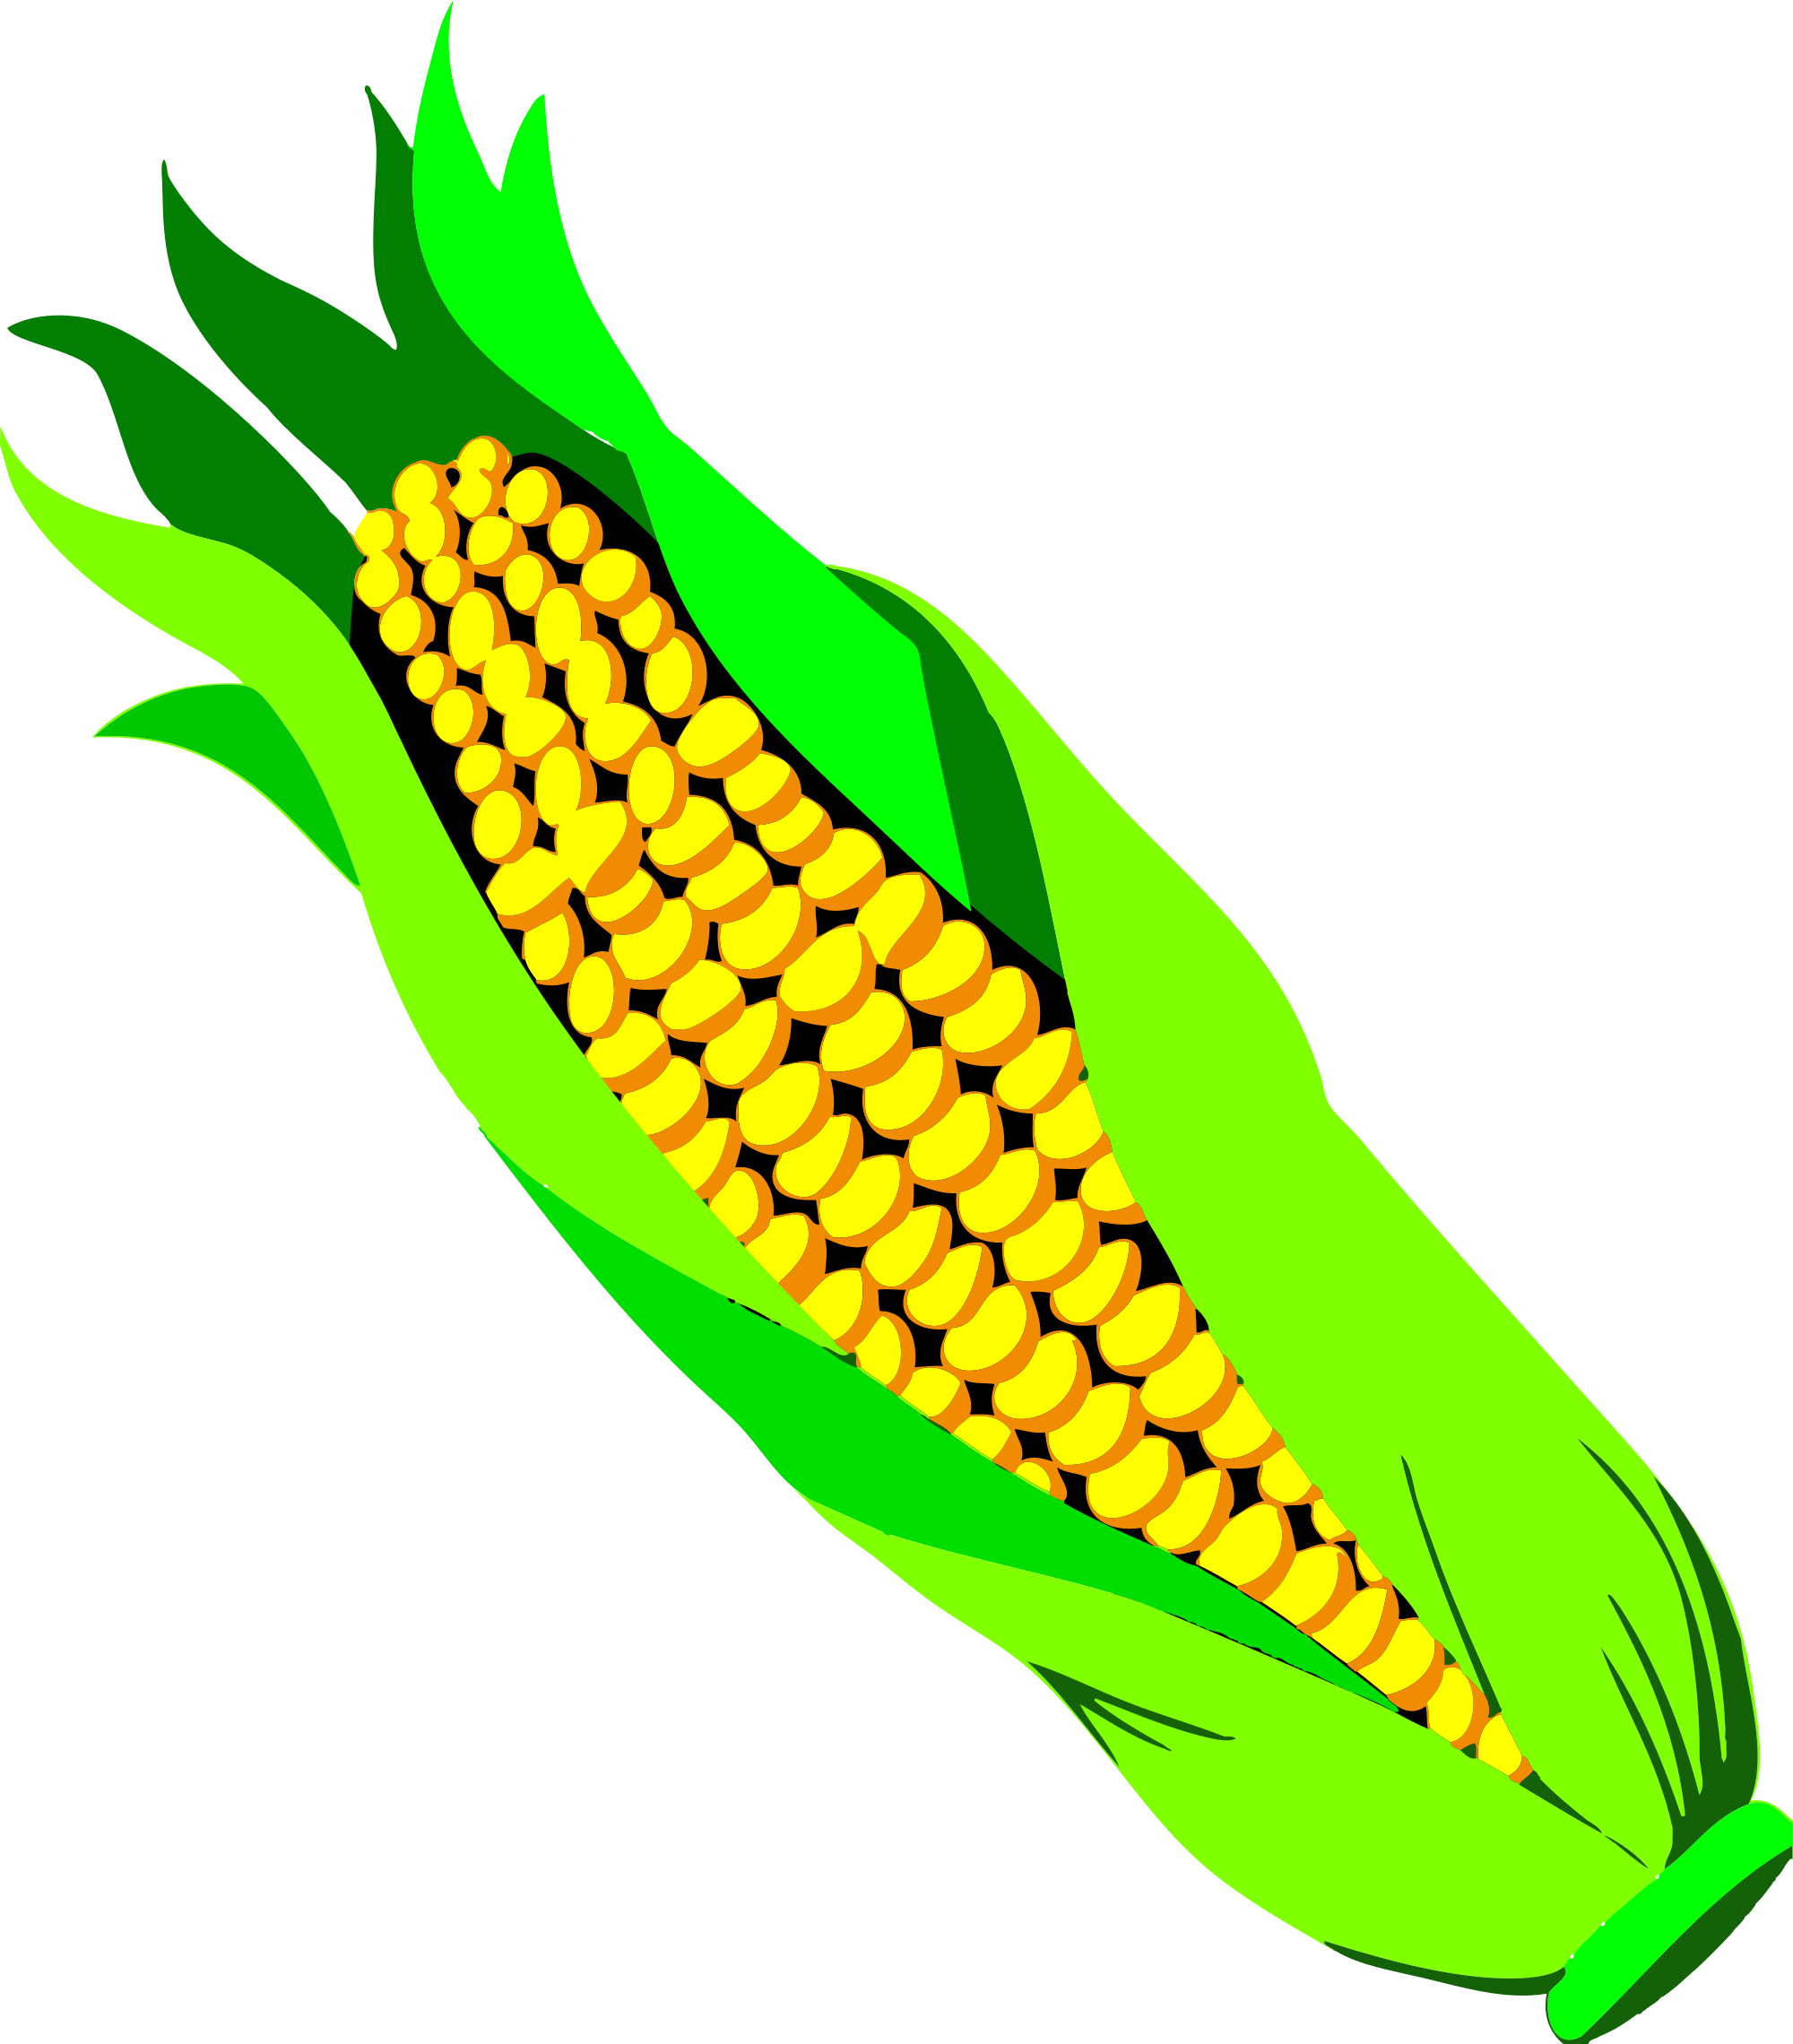 File graphics illustrations free. Fall clipart corn stalk